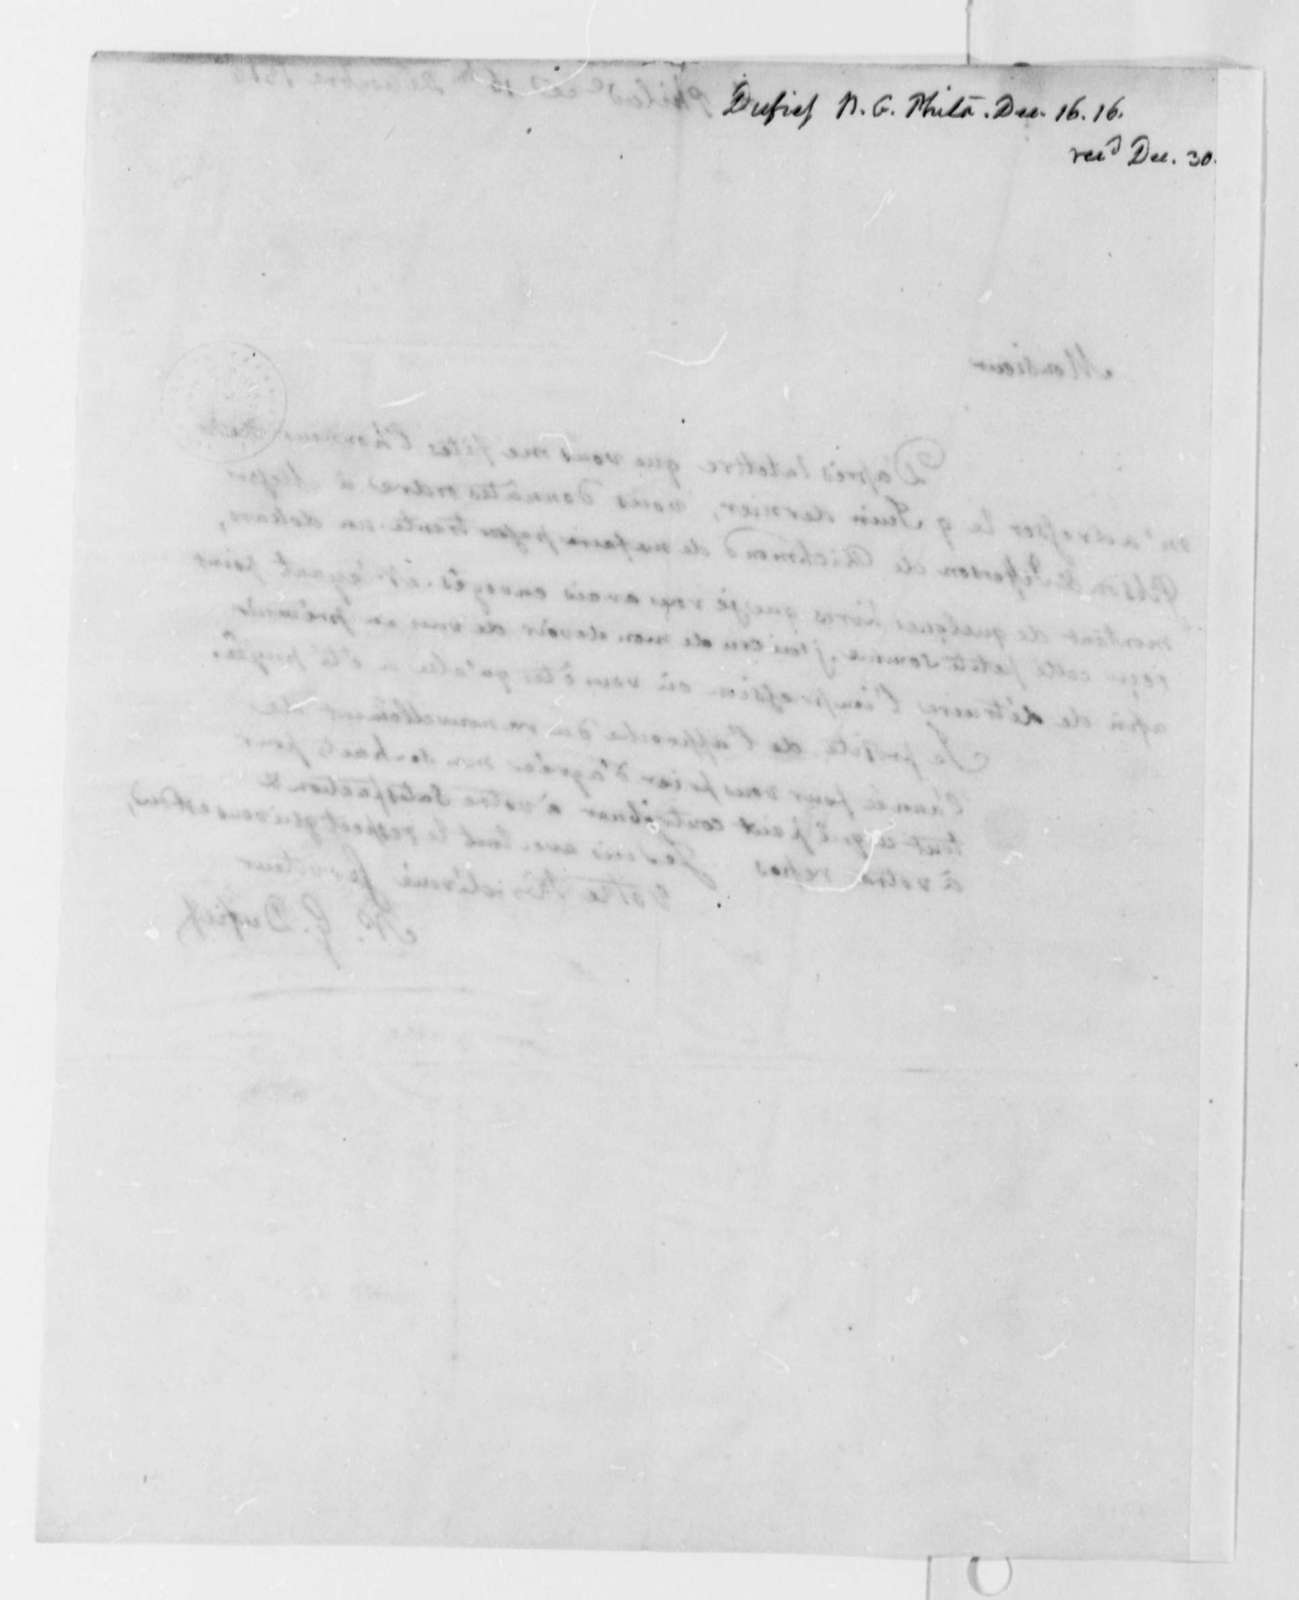 Nicholas Gouin Dufief to Thomas Jefferson, December 16, 1816, in French